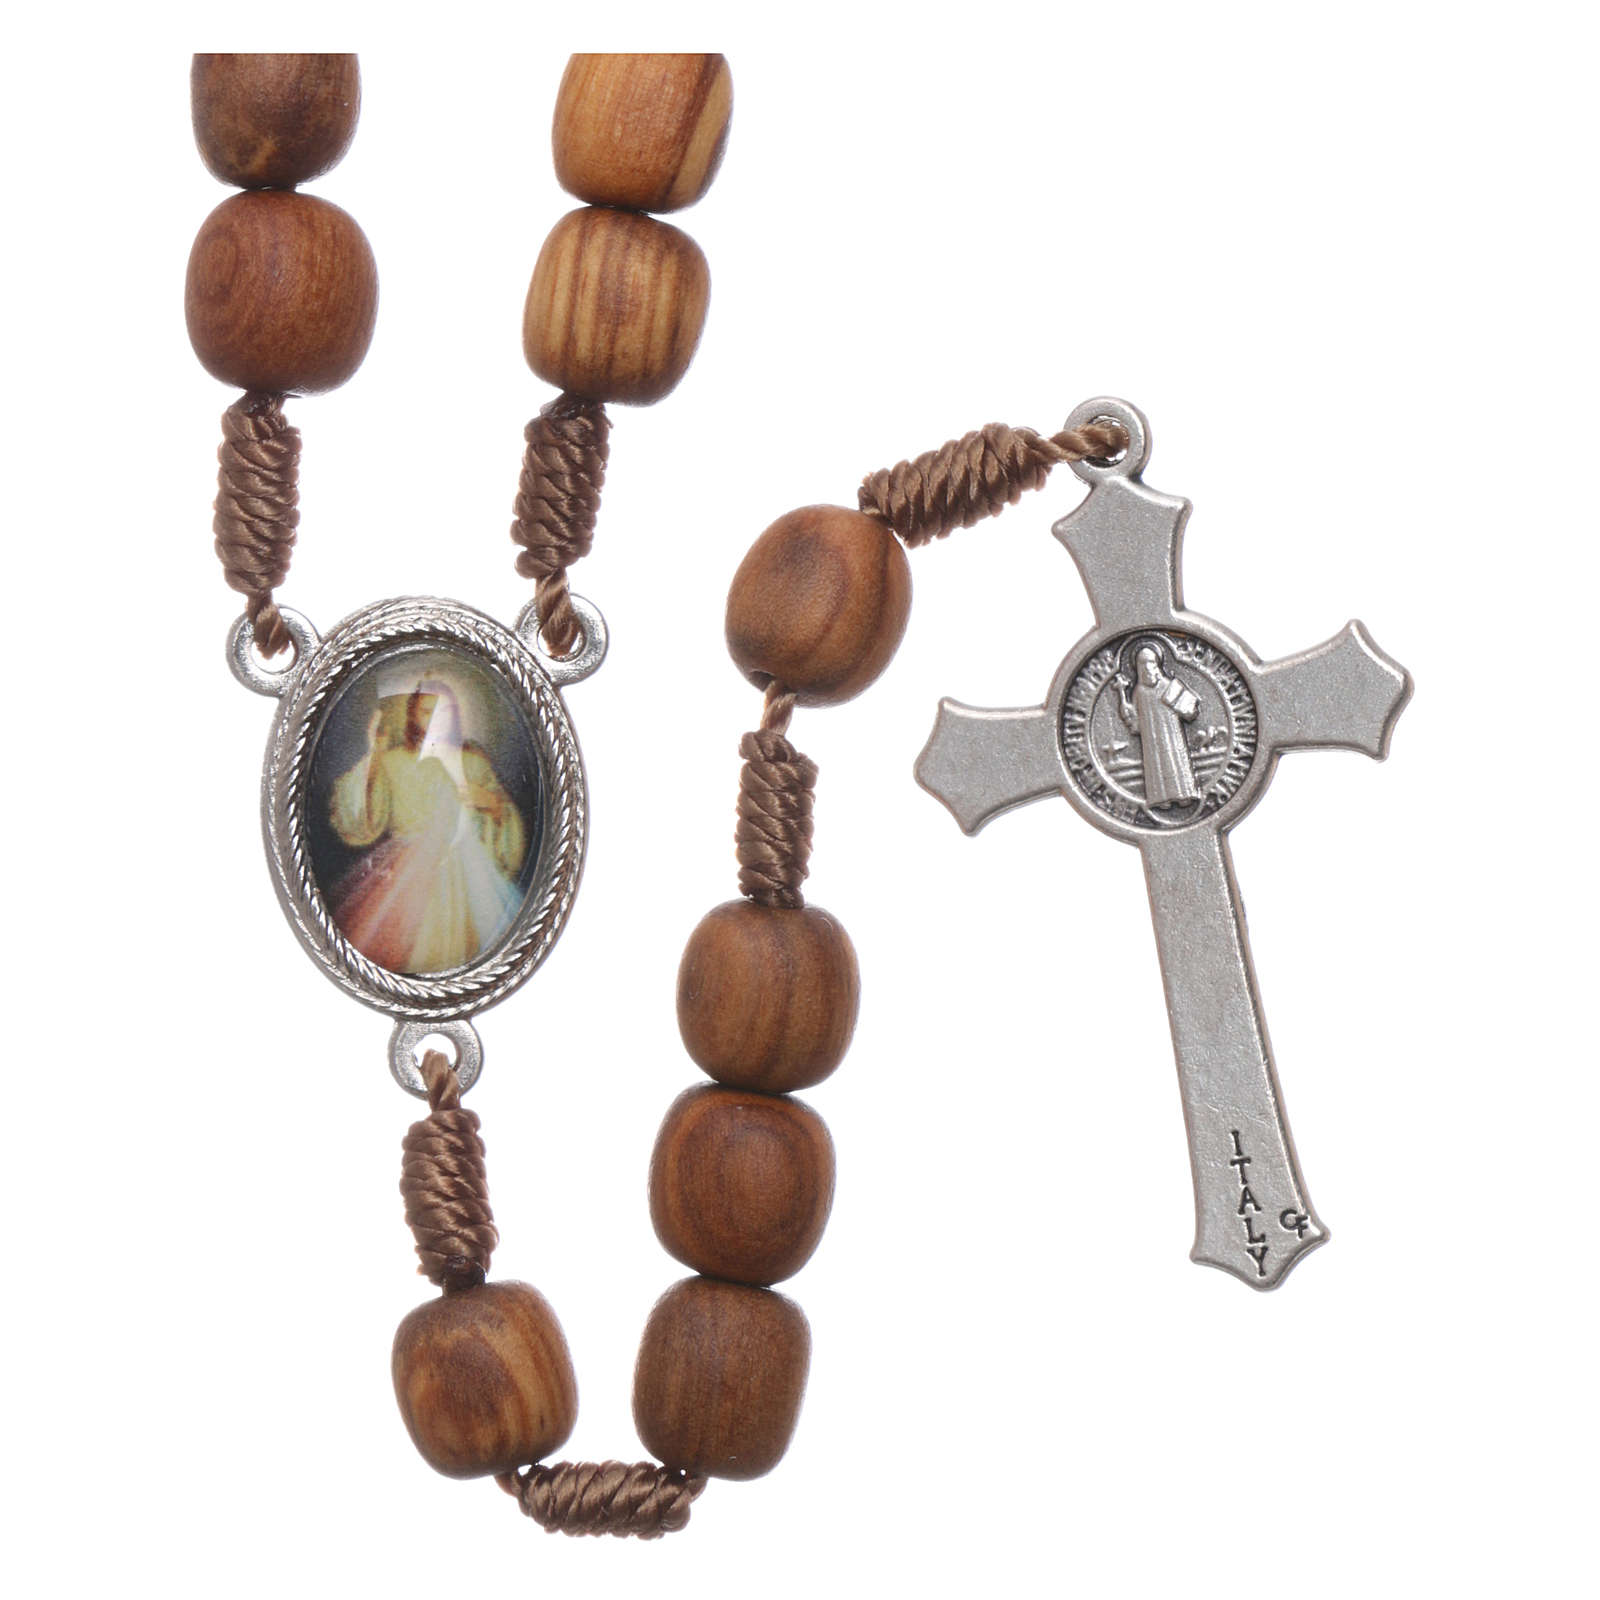 Medjugorje olive wood rosary with cross in metal 4